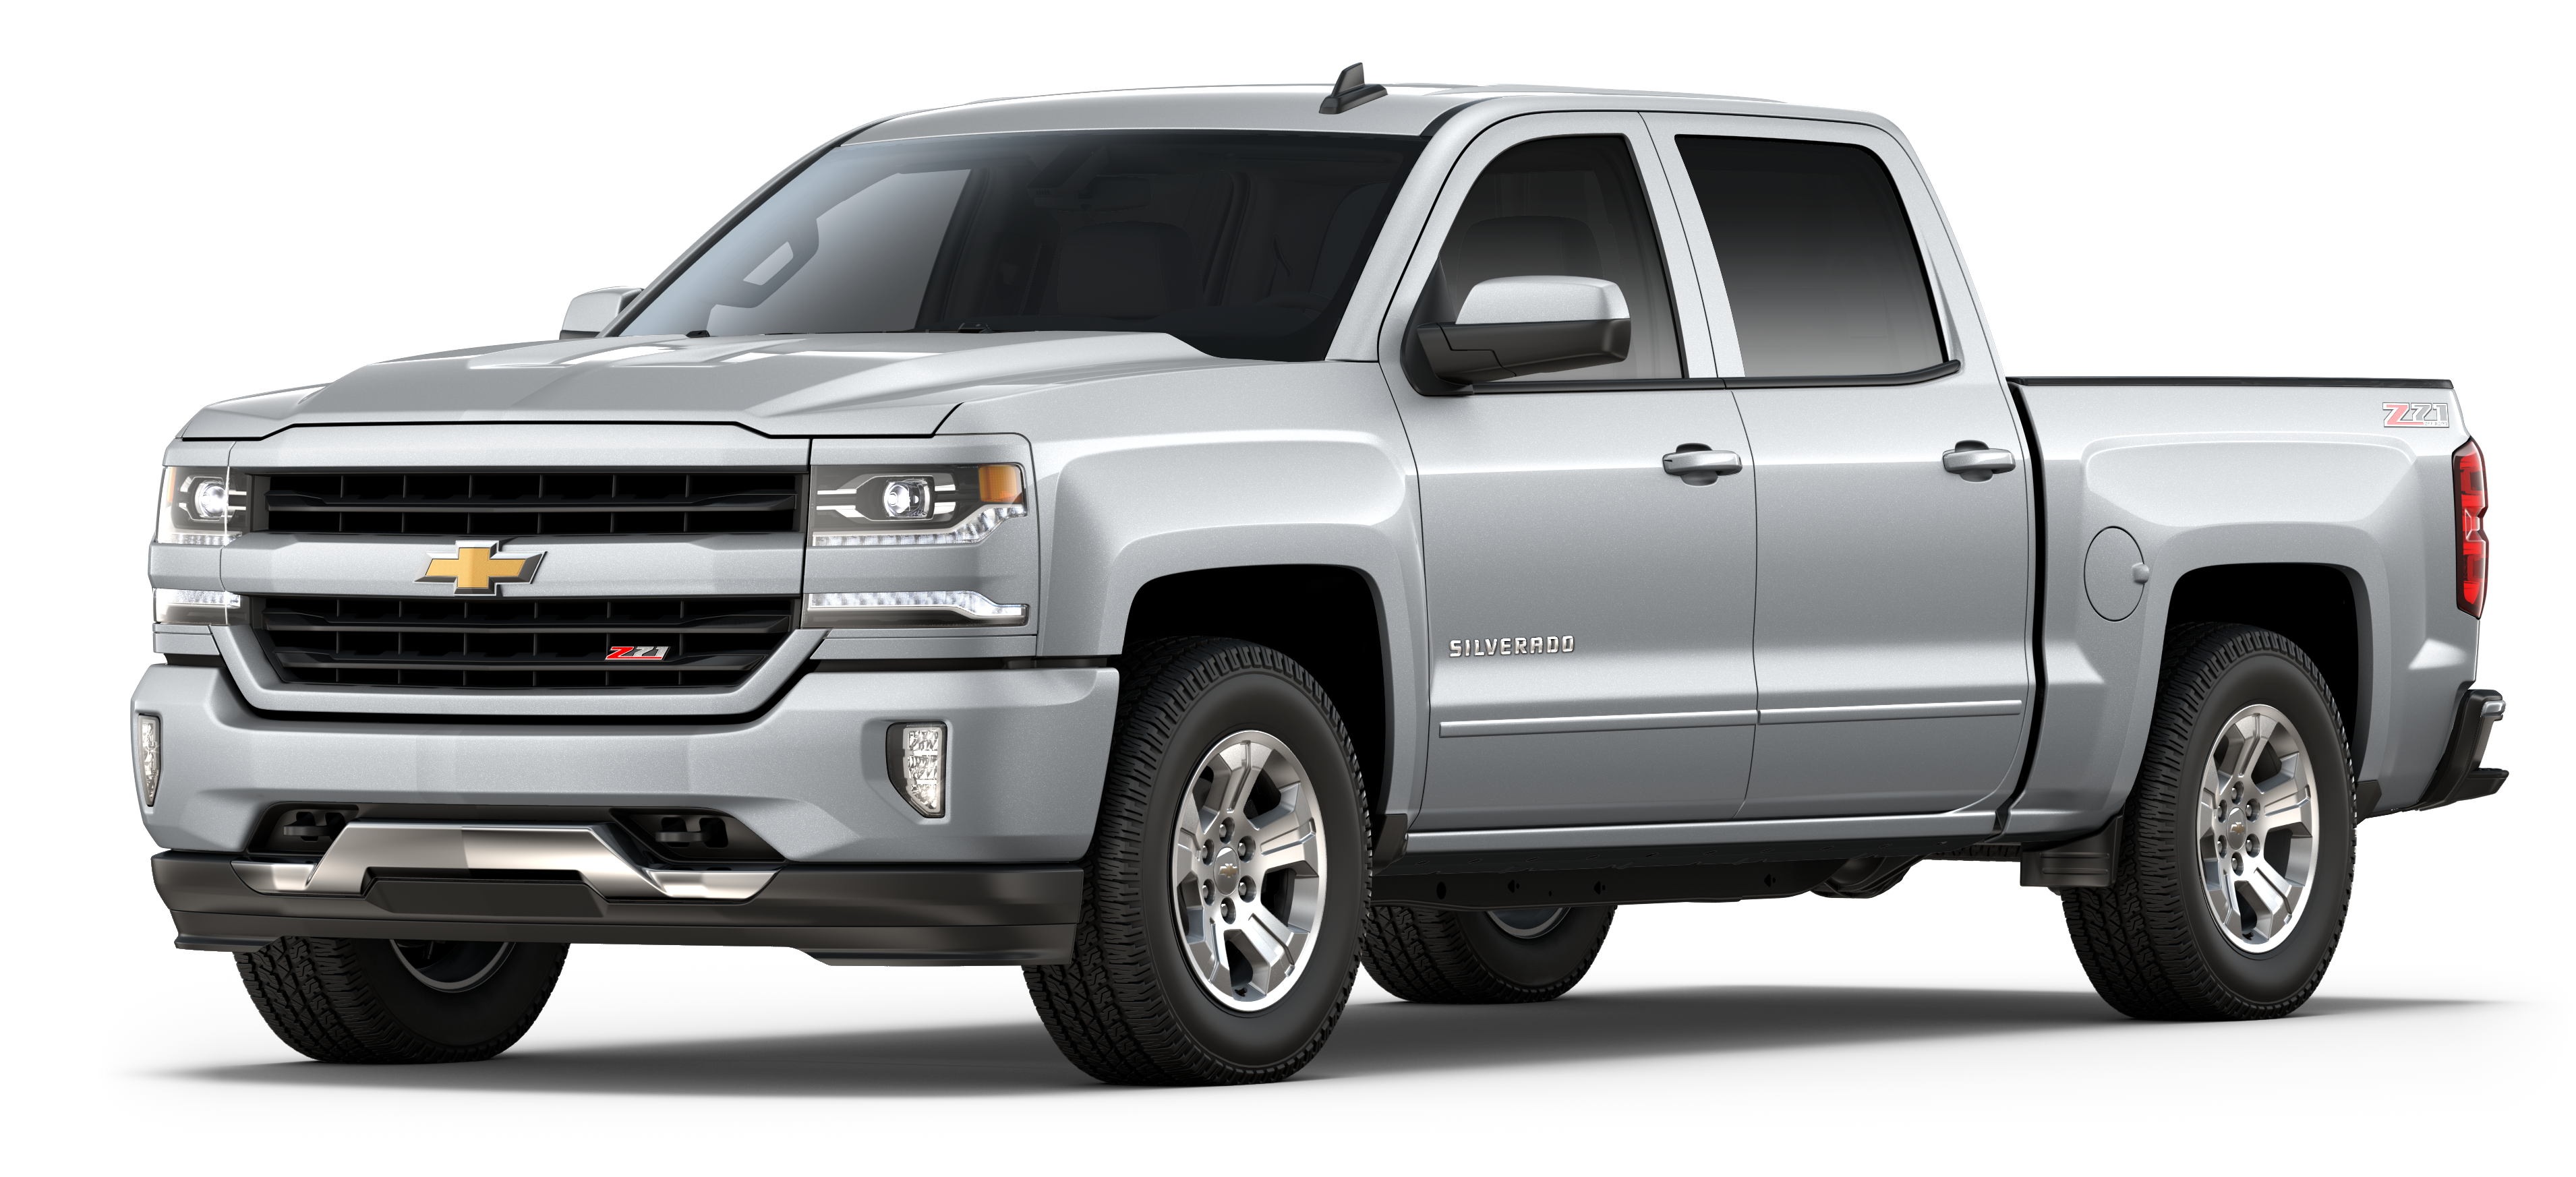 K&J Chevrolet is a Carlyle Chevrolet dealer and a new car and used